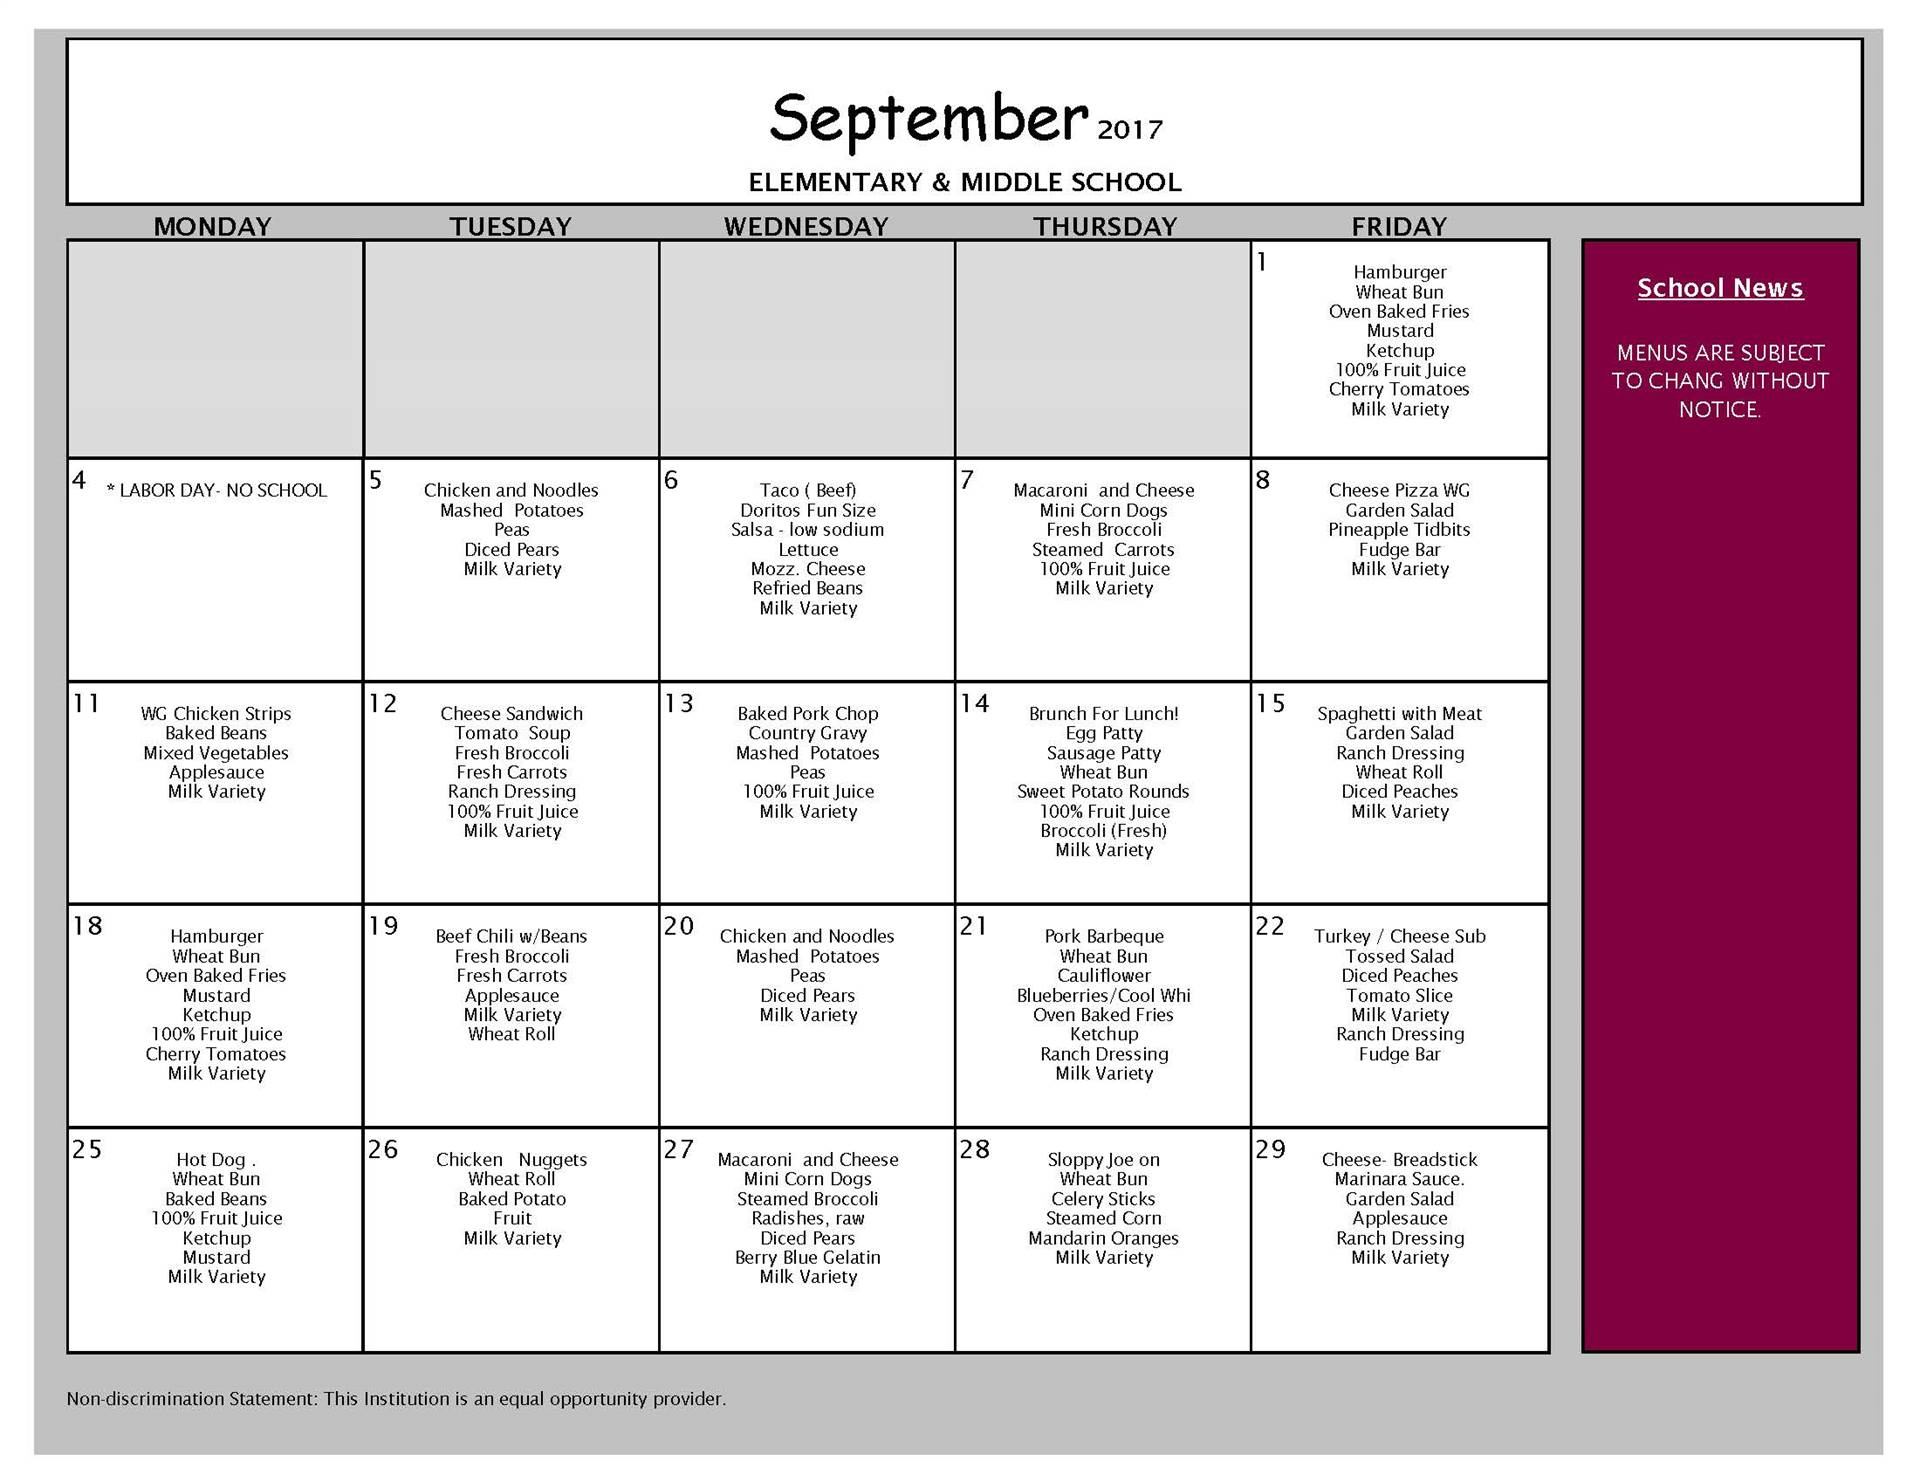 September Lunch - Middle and Elementary Schools